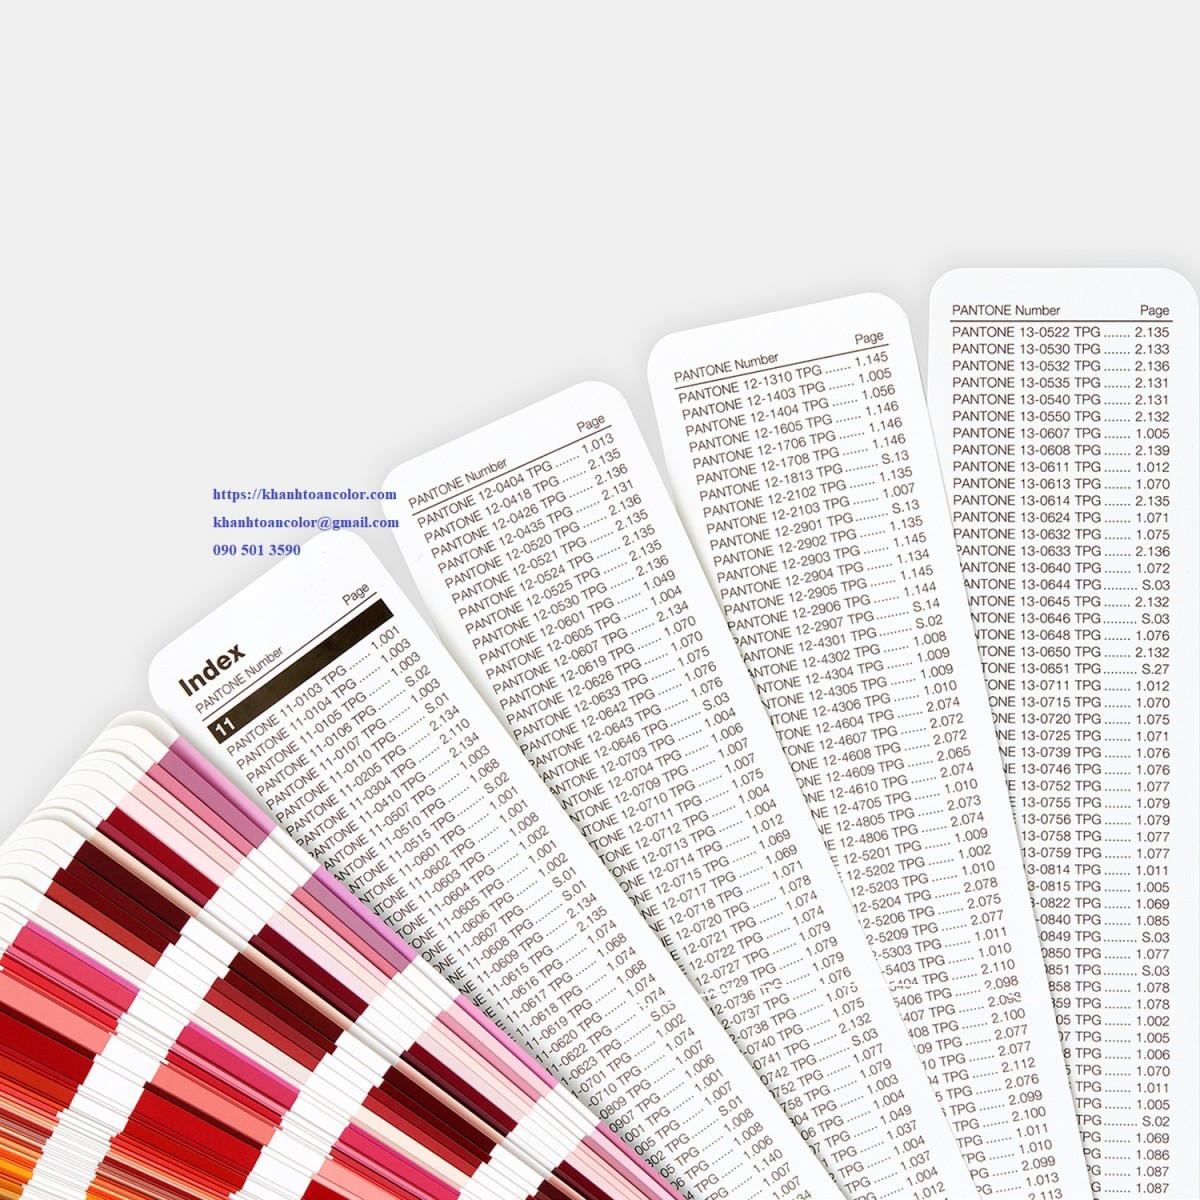 Pantone mau chinh hang FHIP110N-pantone-fashion-home-interiors-tpg-color-fan-deck-color-guide-index-product-3